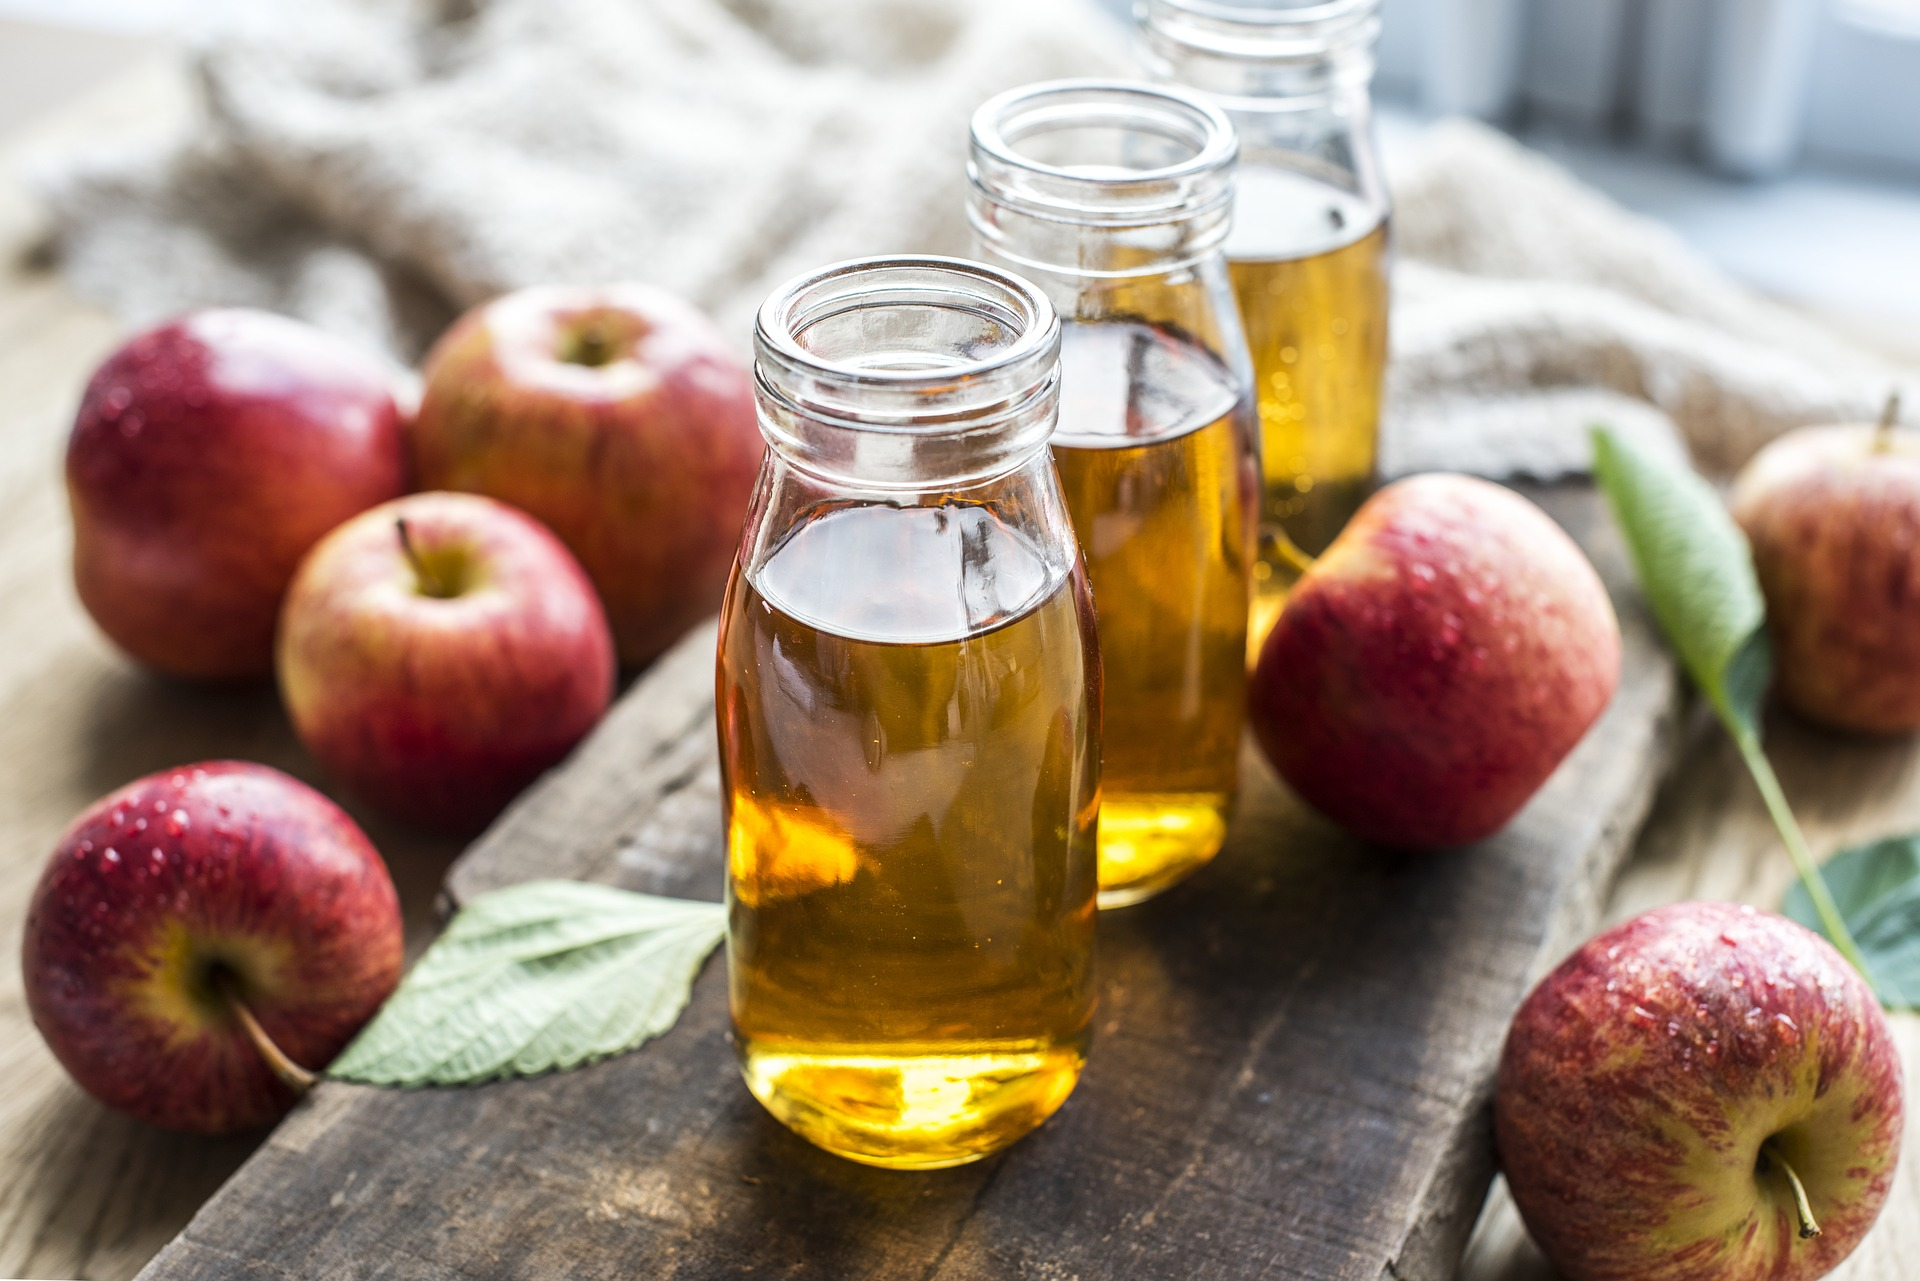 Three bottles of apple juice sitting on a plank of wood surrounded by apples and leaves. - TAB Bank